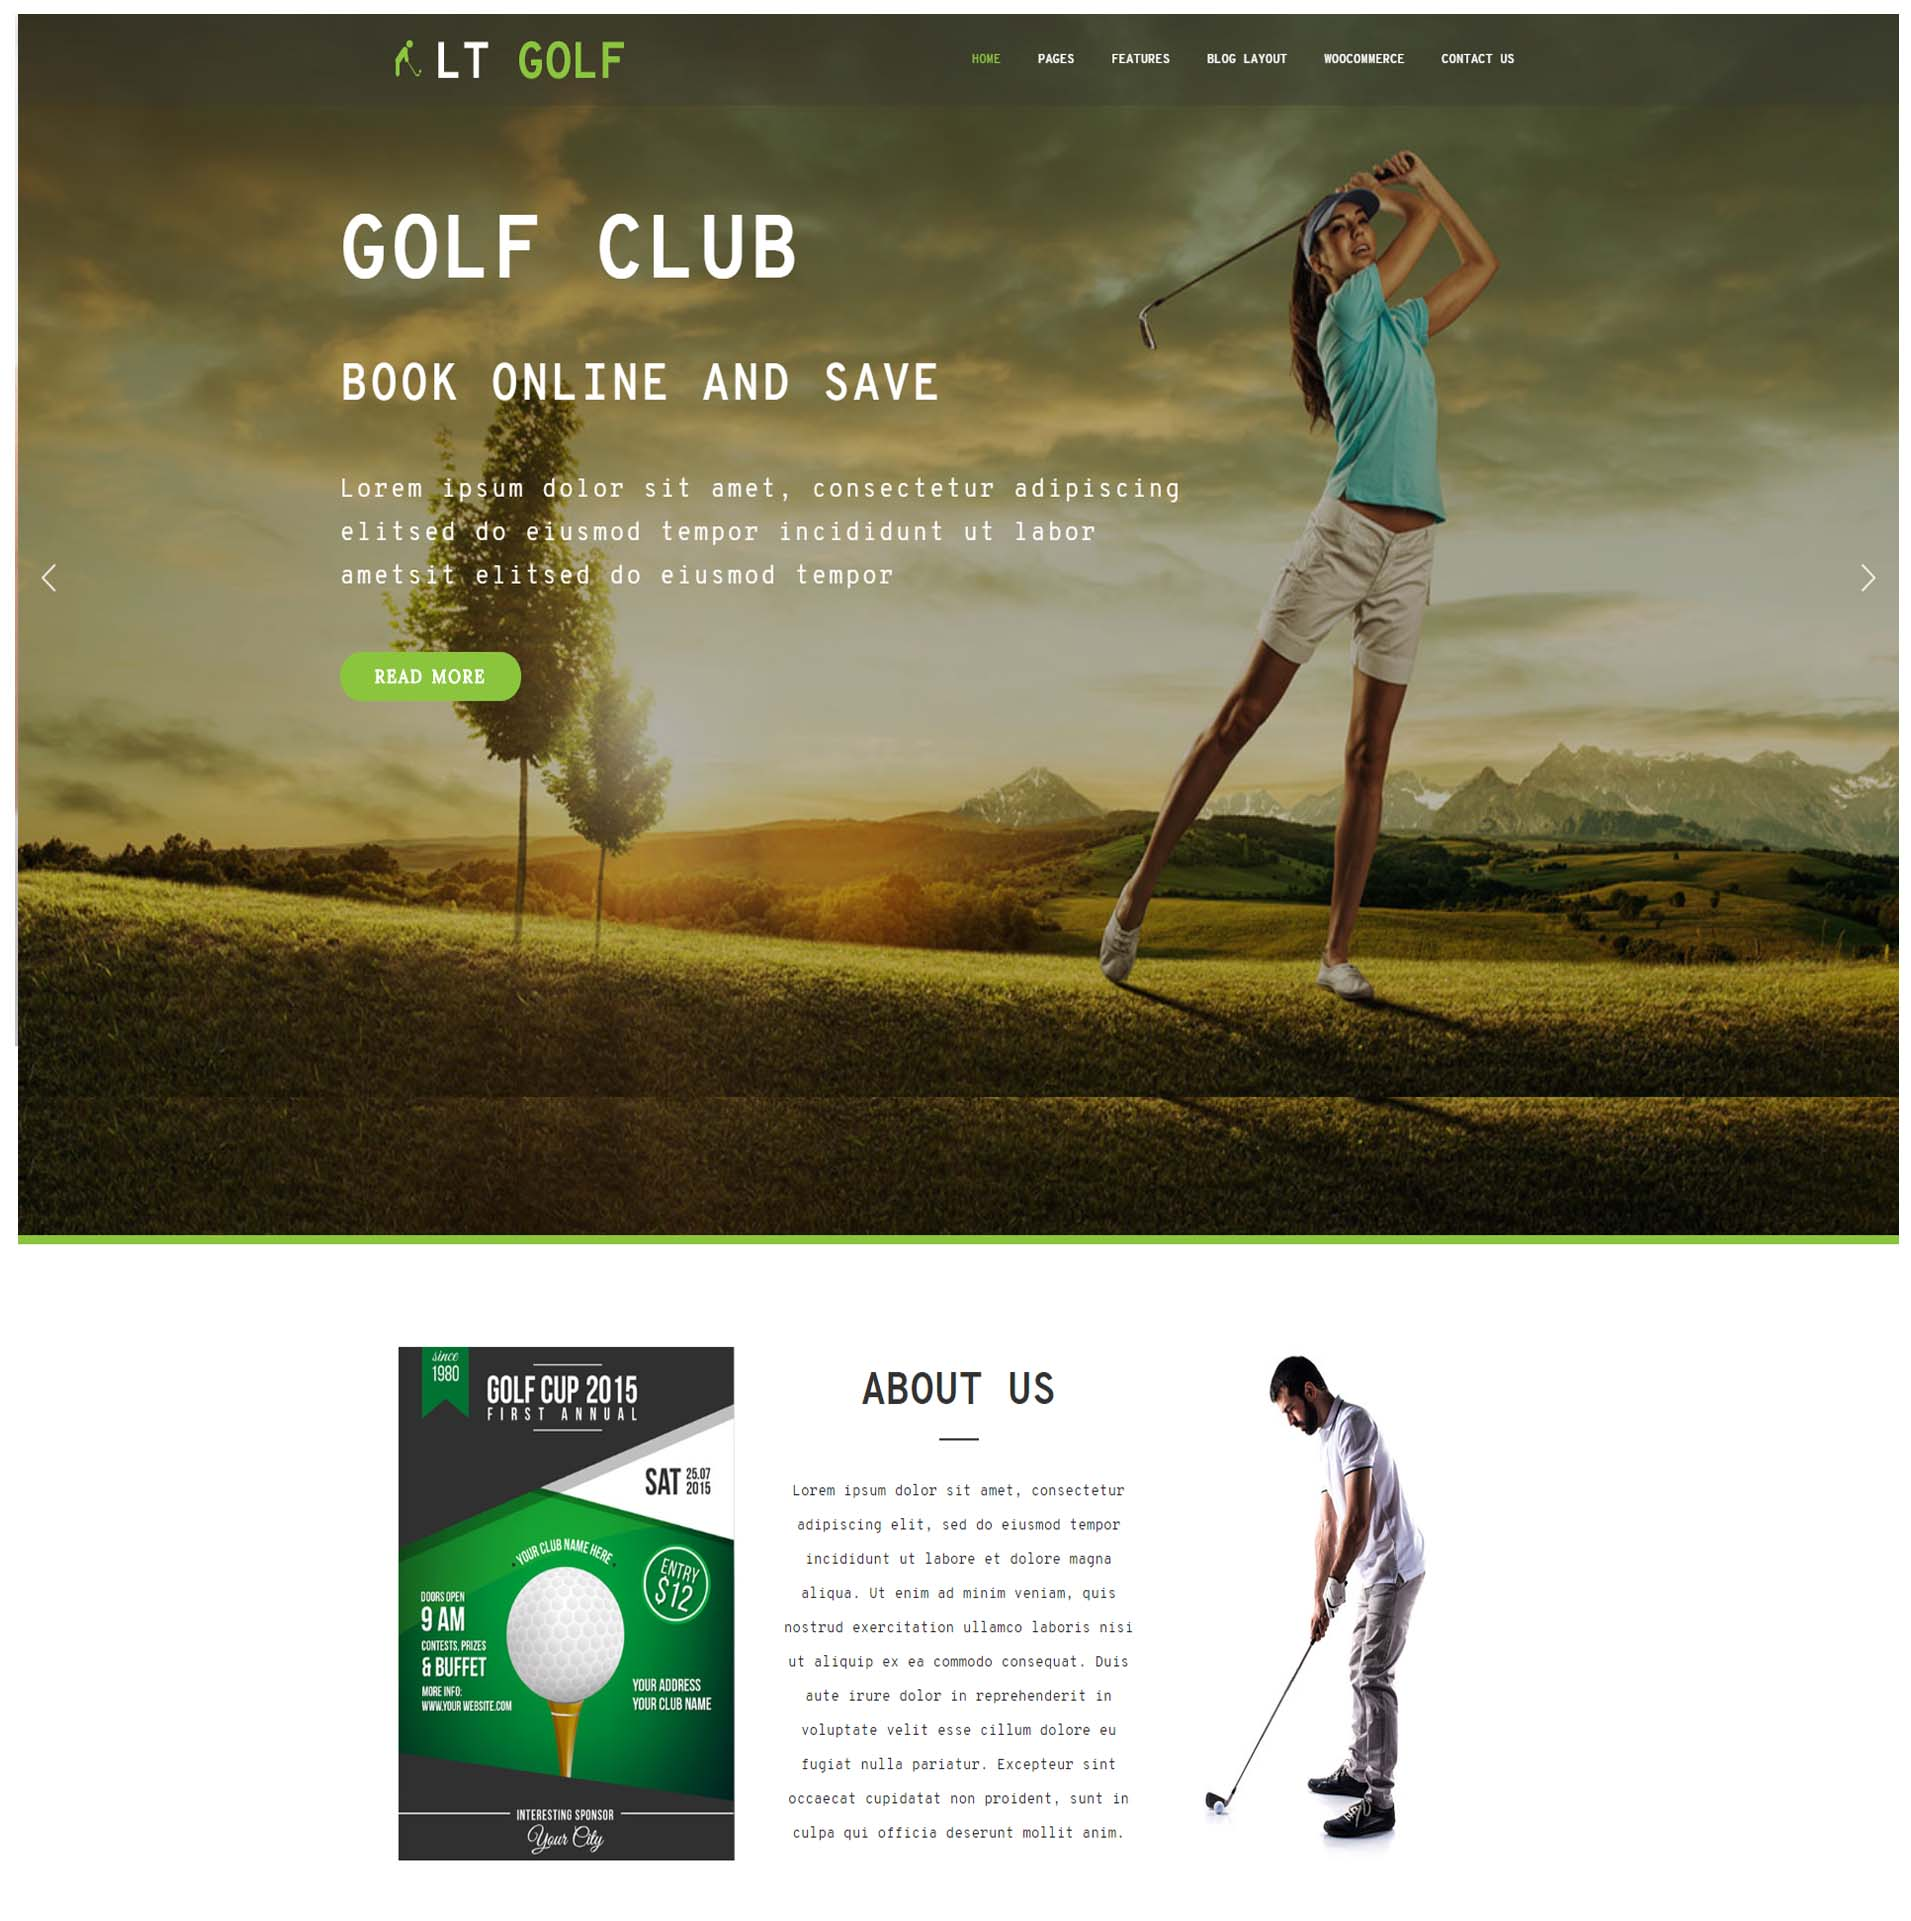 lt-golf-wordpress-theme